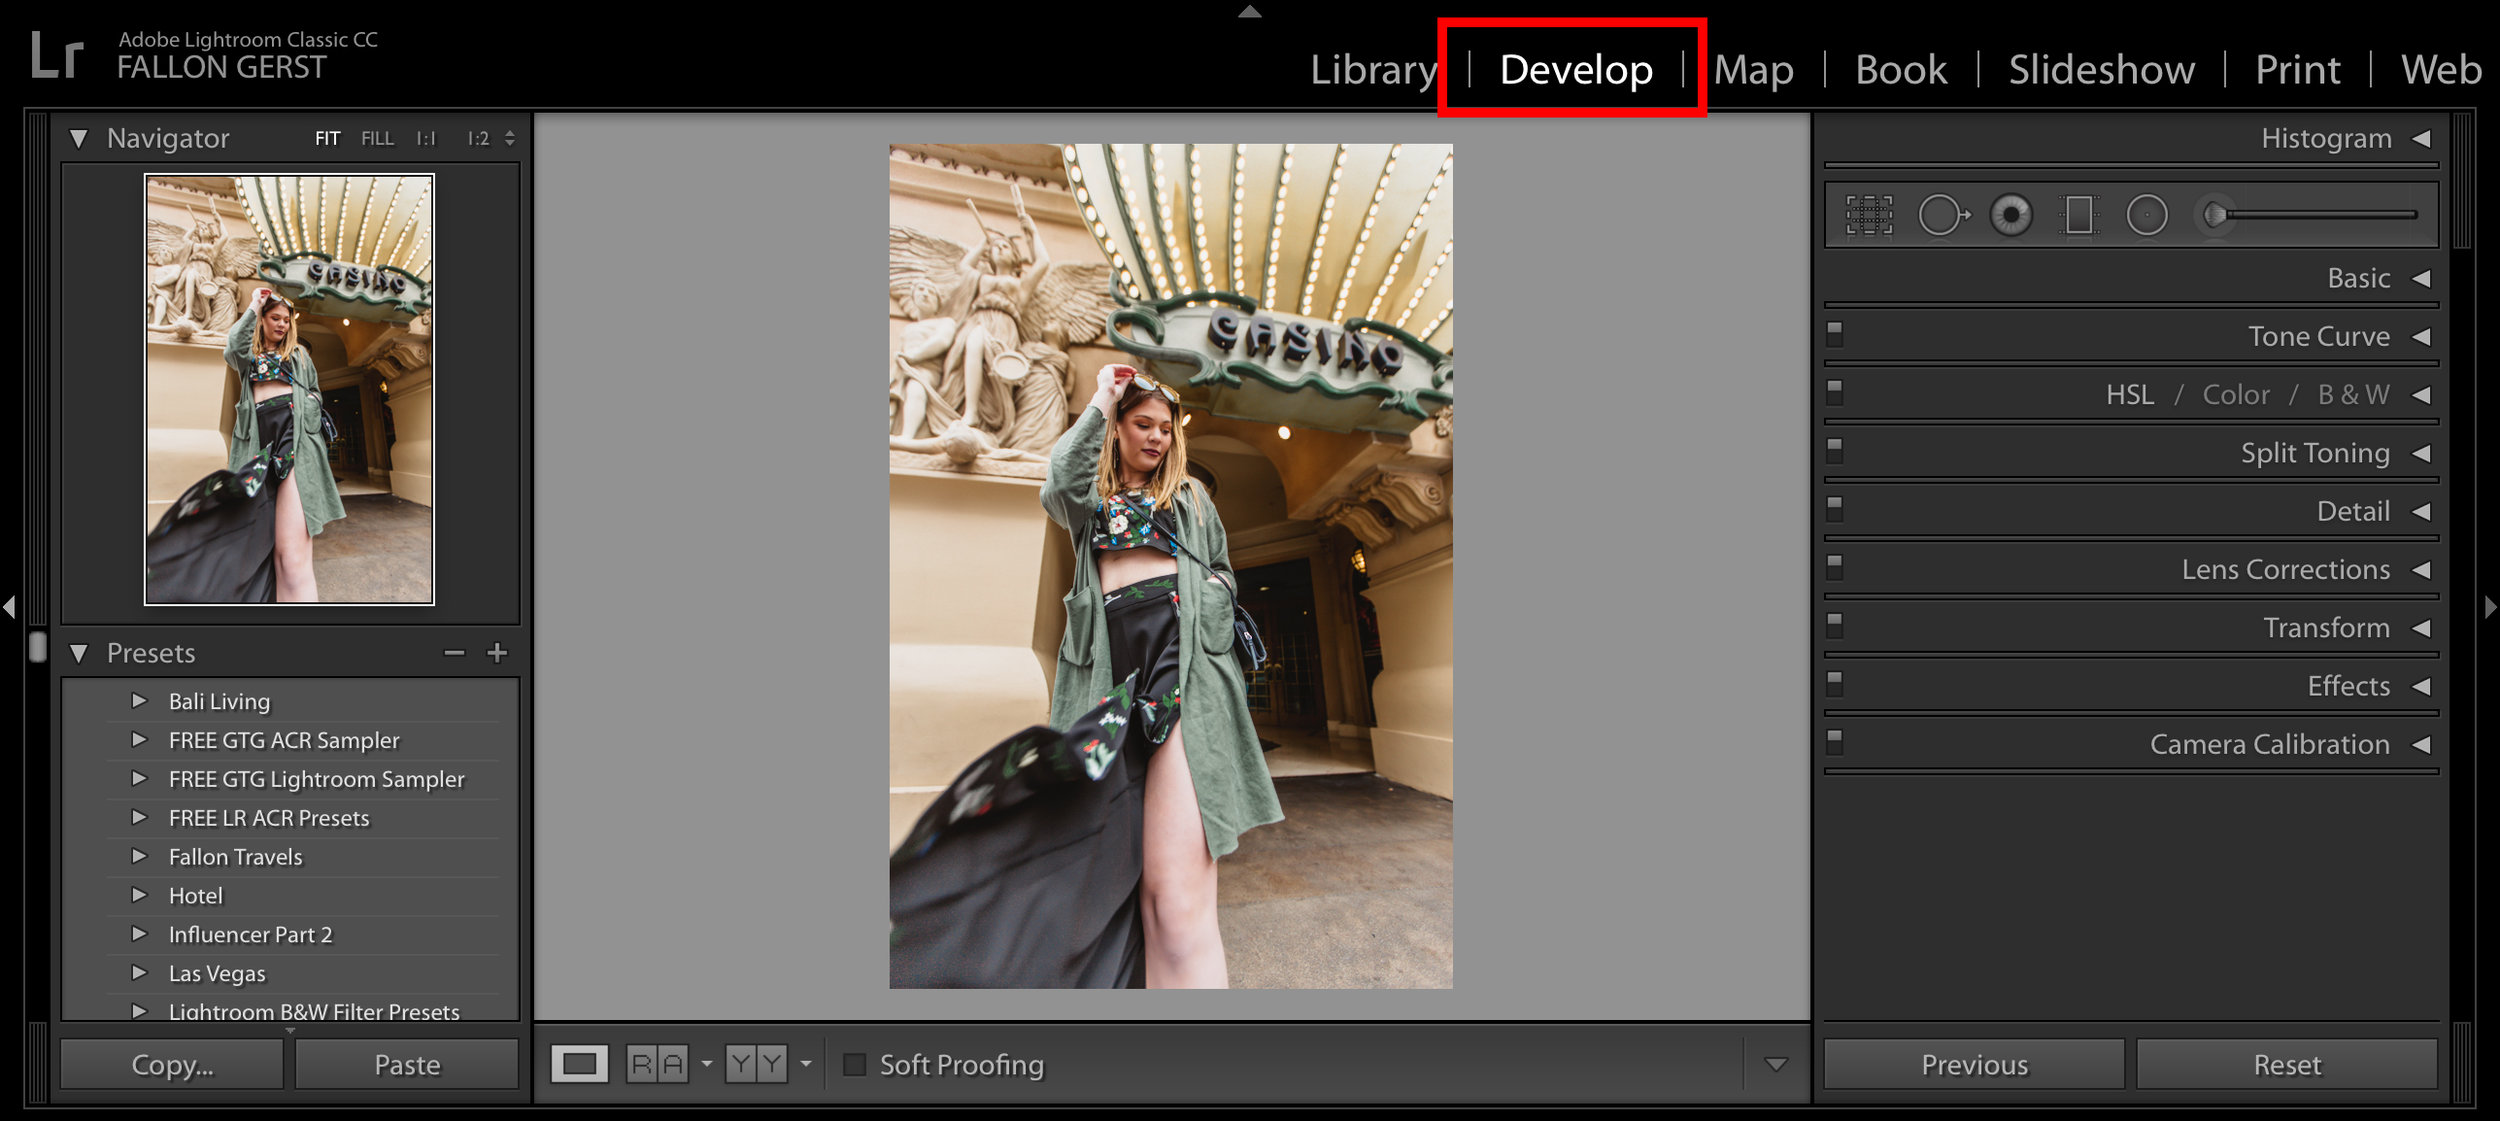 Develop Module In Adobe Lightroom